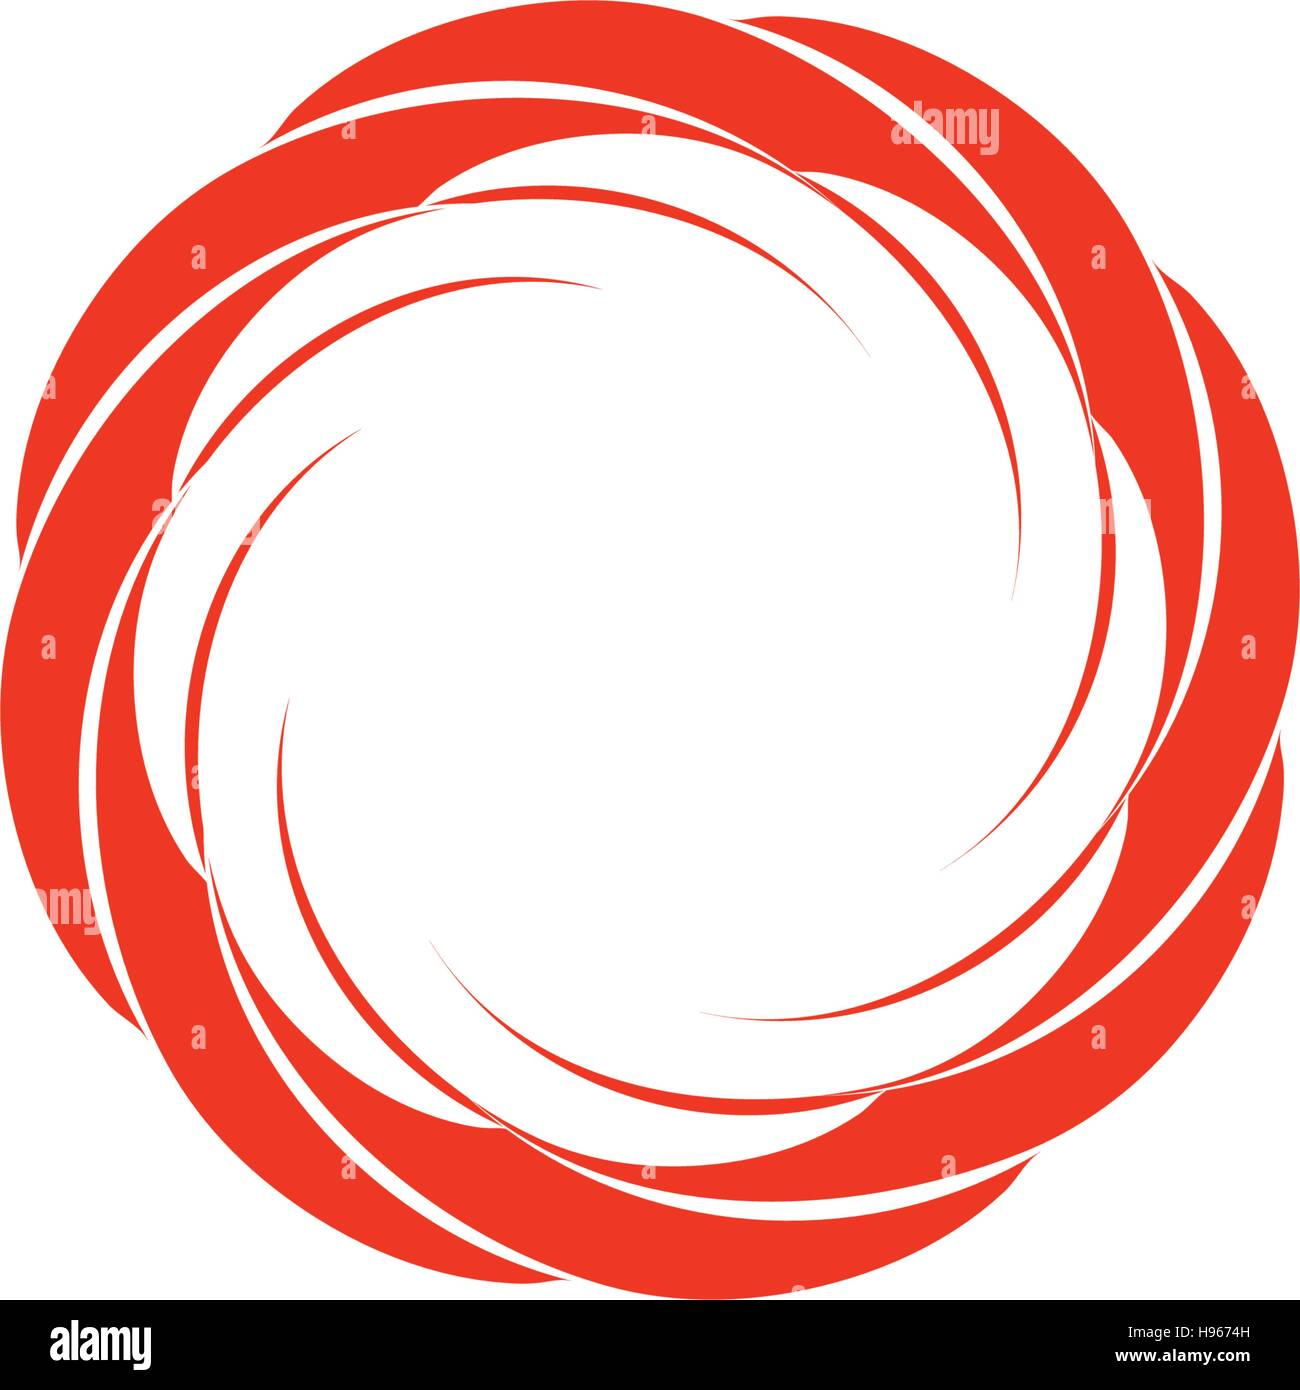 isolated abstract red color circular sun logo round shape logotype